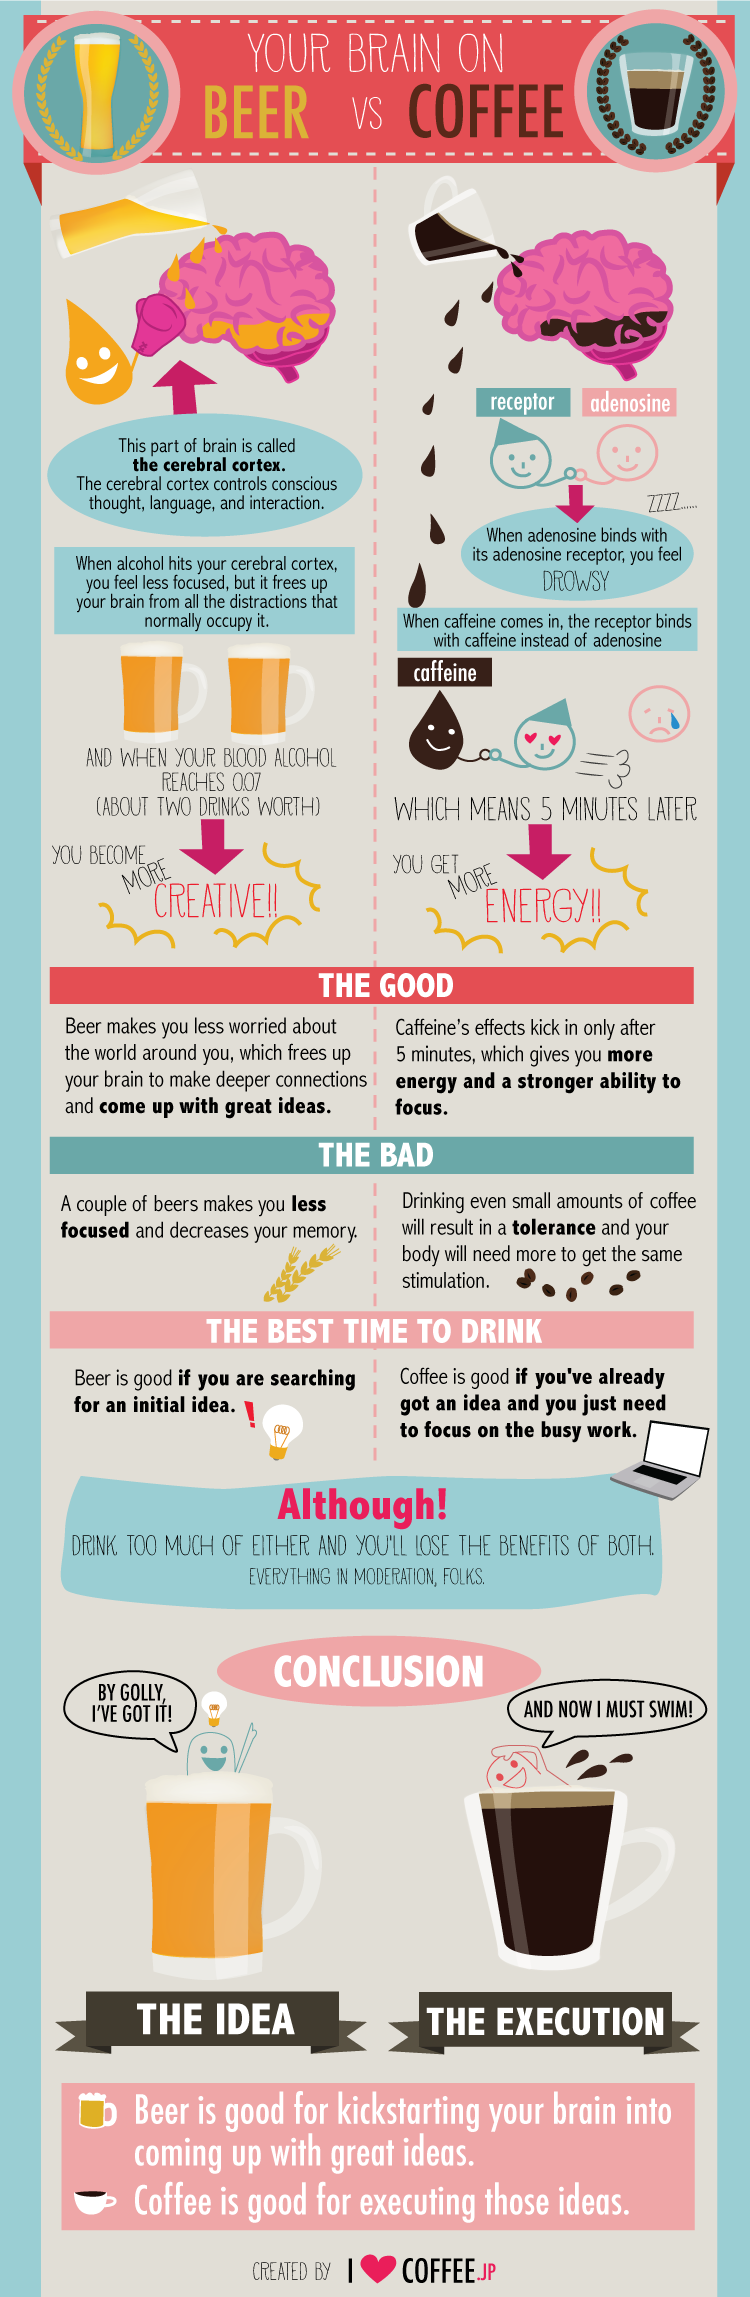 Your-brain-on-Beer-vs-Coffee